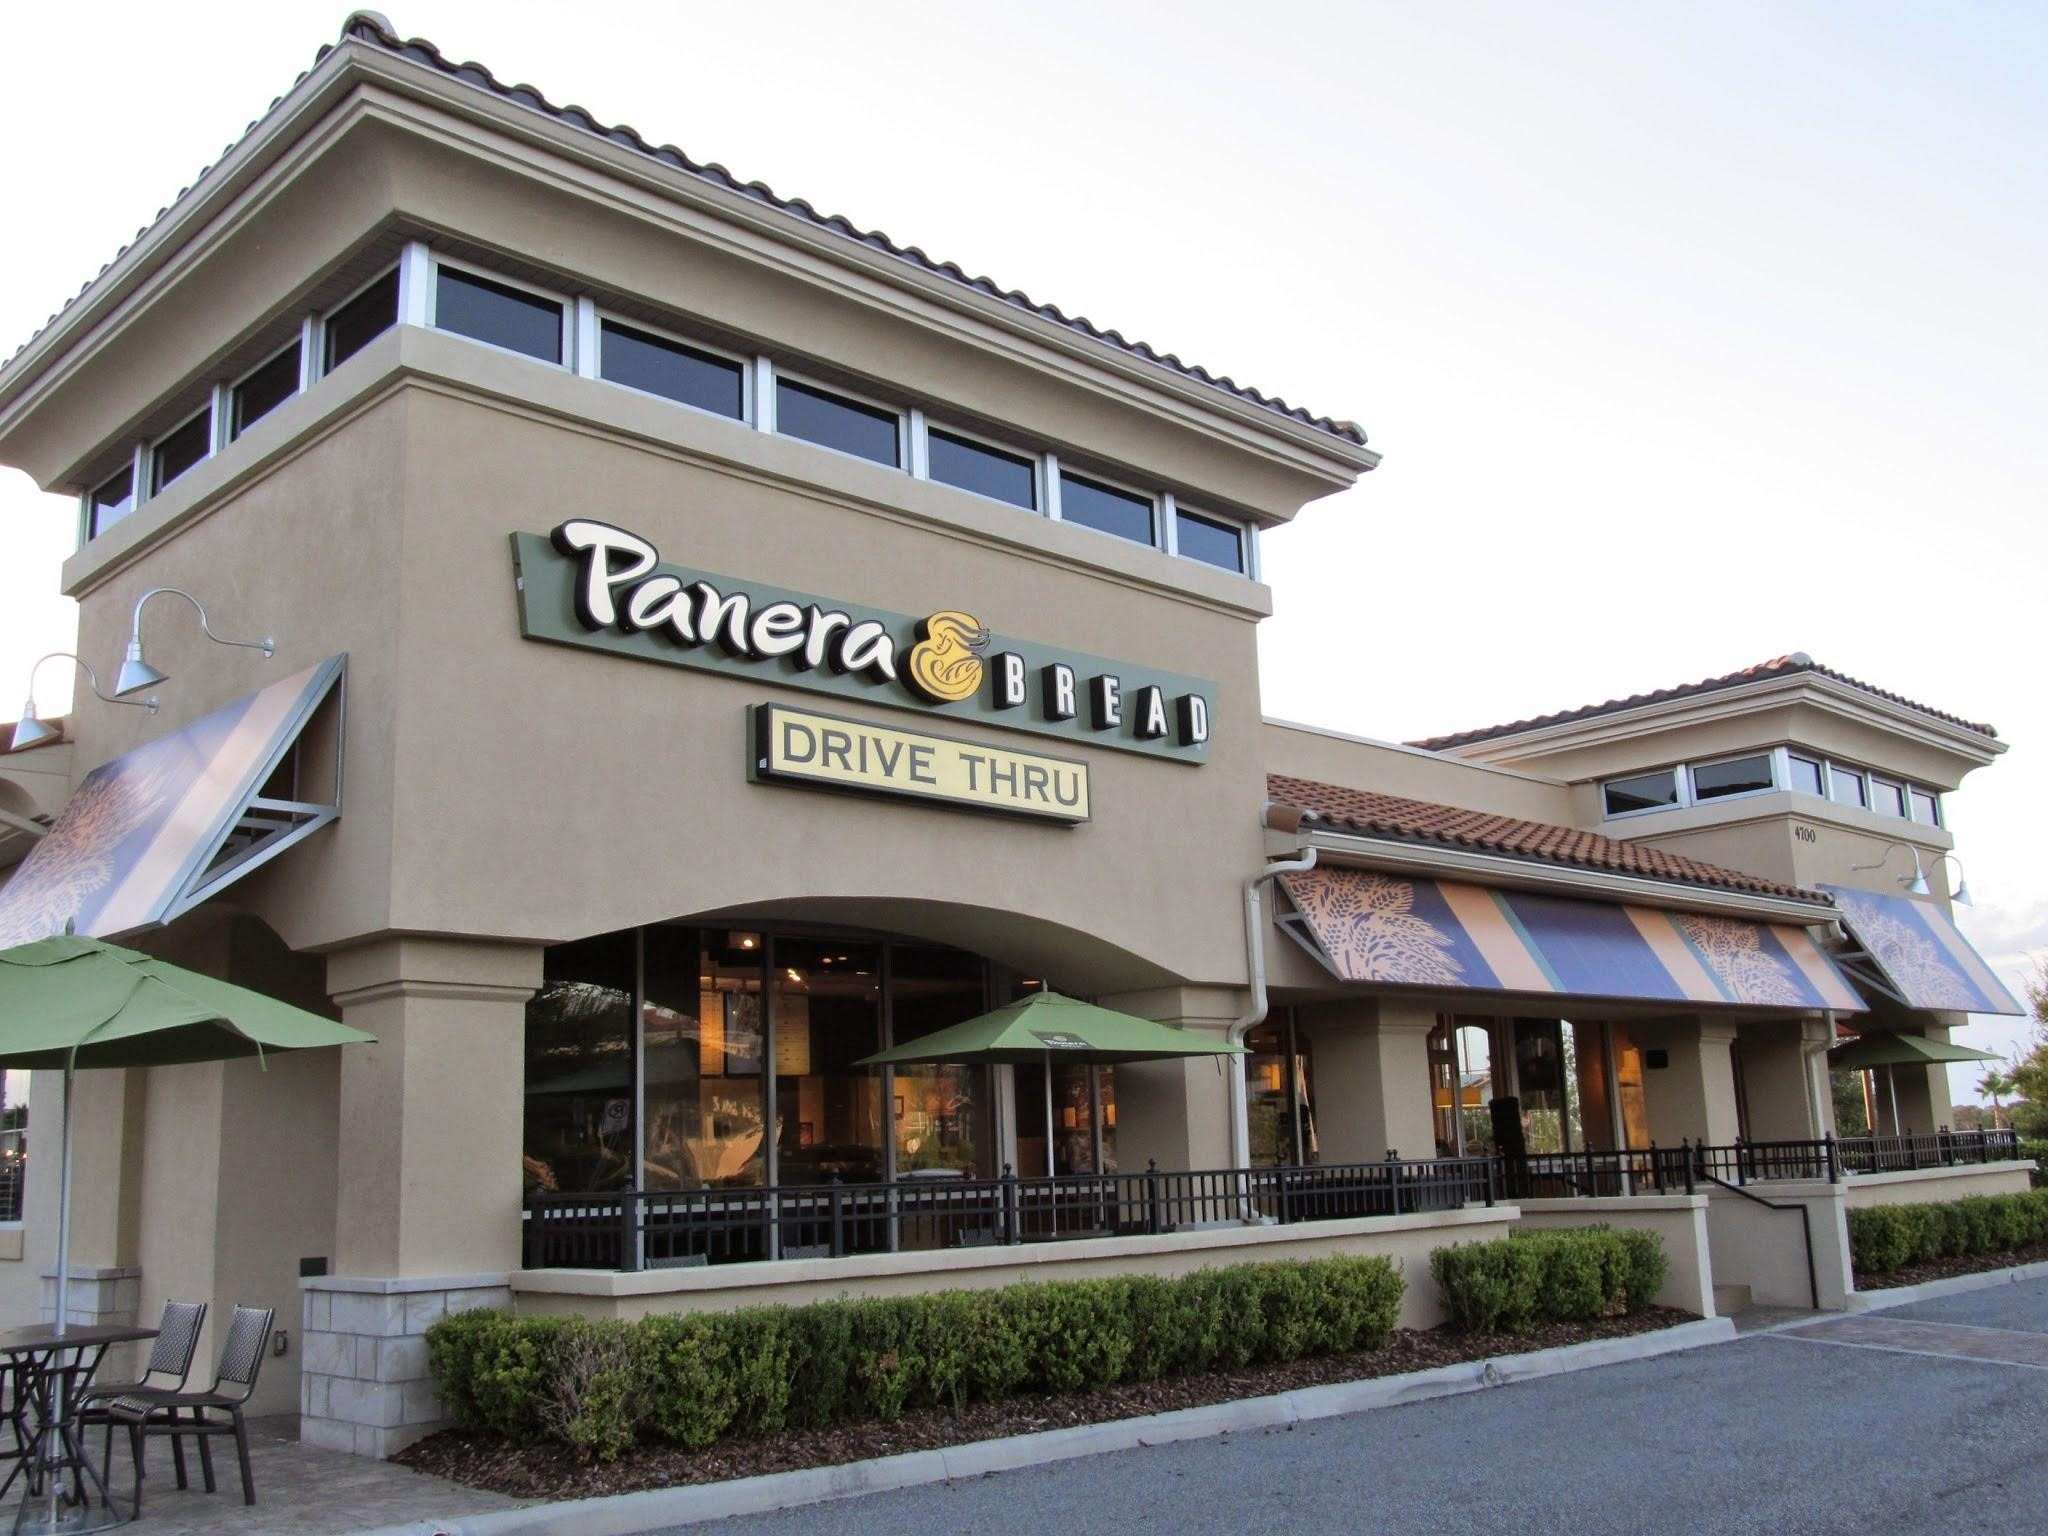 Panera Bread house